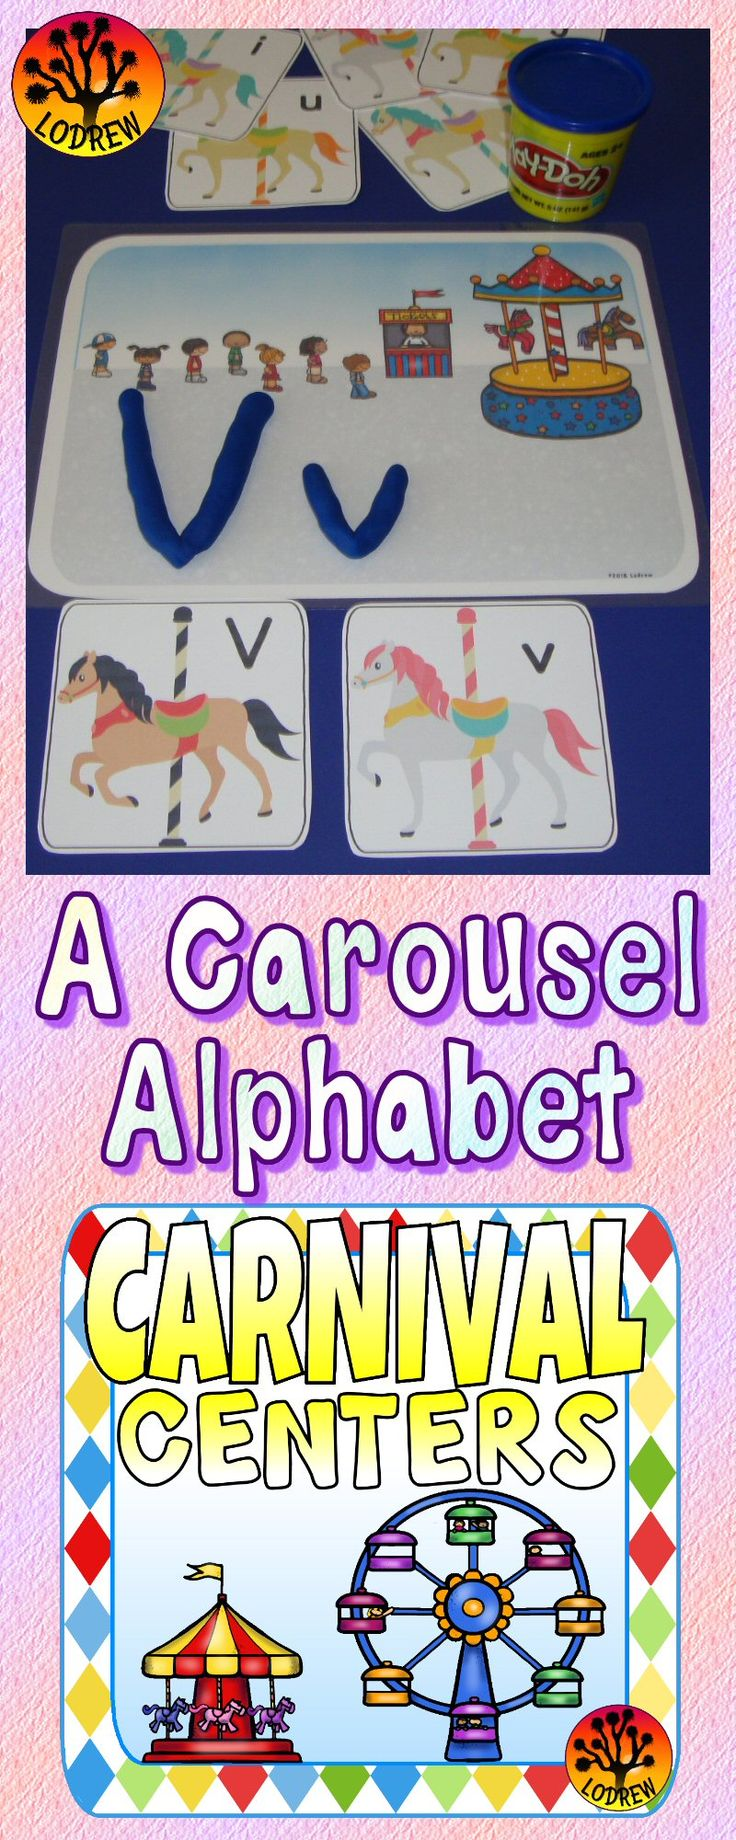 205 pages of centers for your carnival unit or amusement park theme. Carnival activities include math, literacy, logic, cardinality, beginning sounds, letter matching, letter order, base ten blocks, counting, subitizing, fine motor, bundle, ordinal numbers, shapes, tally marks, spelling, writing, color words, and more. For kindergarten, preschool, SPED, child care, homeschool, or any early childhood setting.